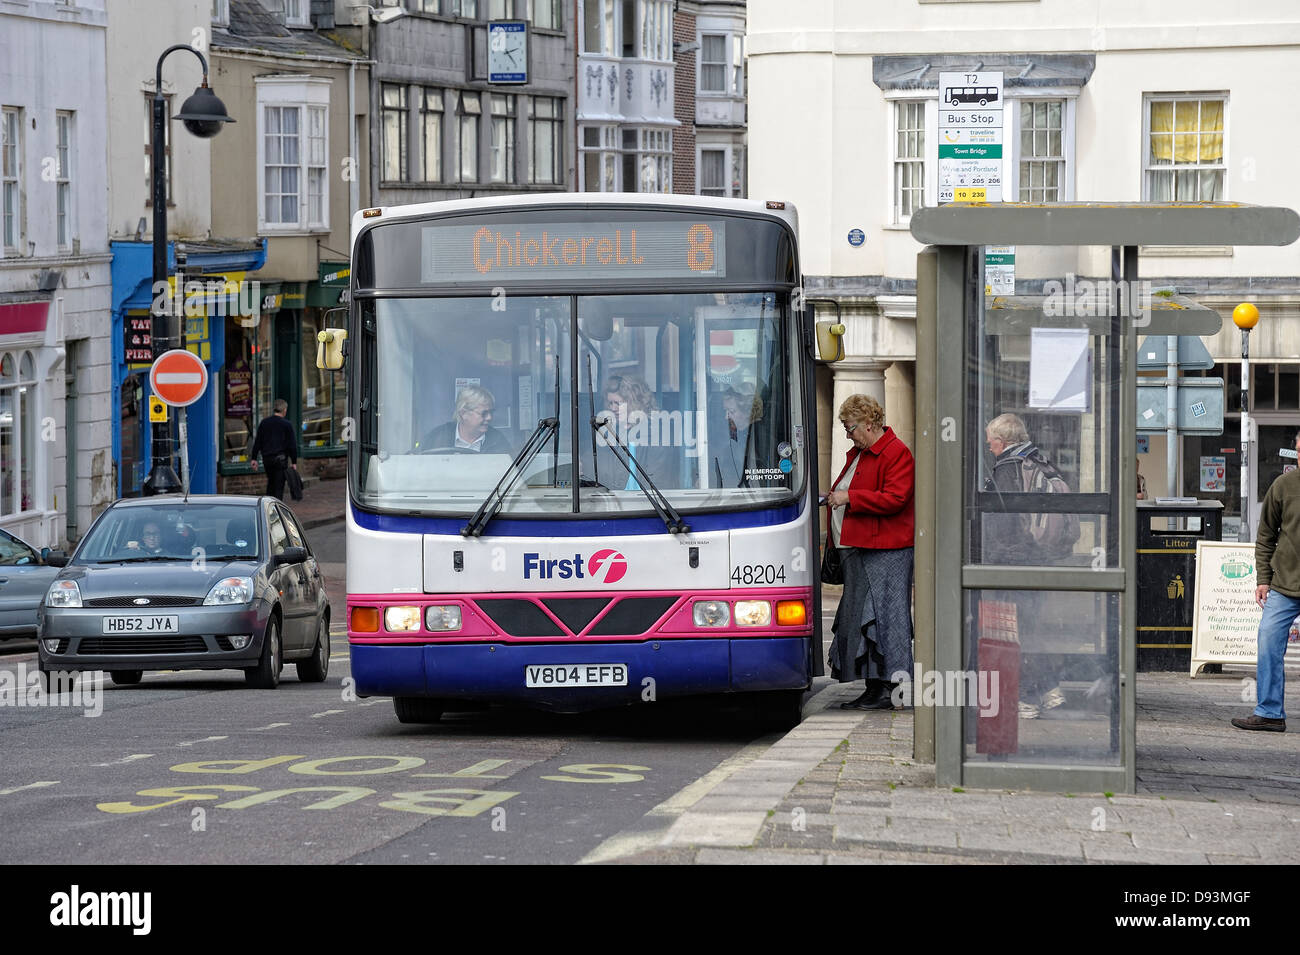 Passengers boarding a bus at a bus stop Weymouth Dorset England uk Stock Photo